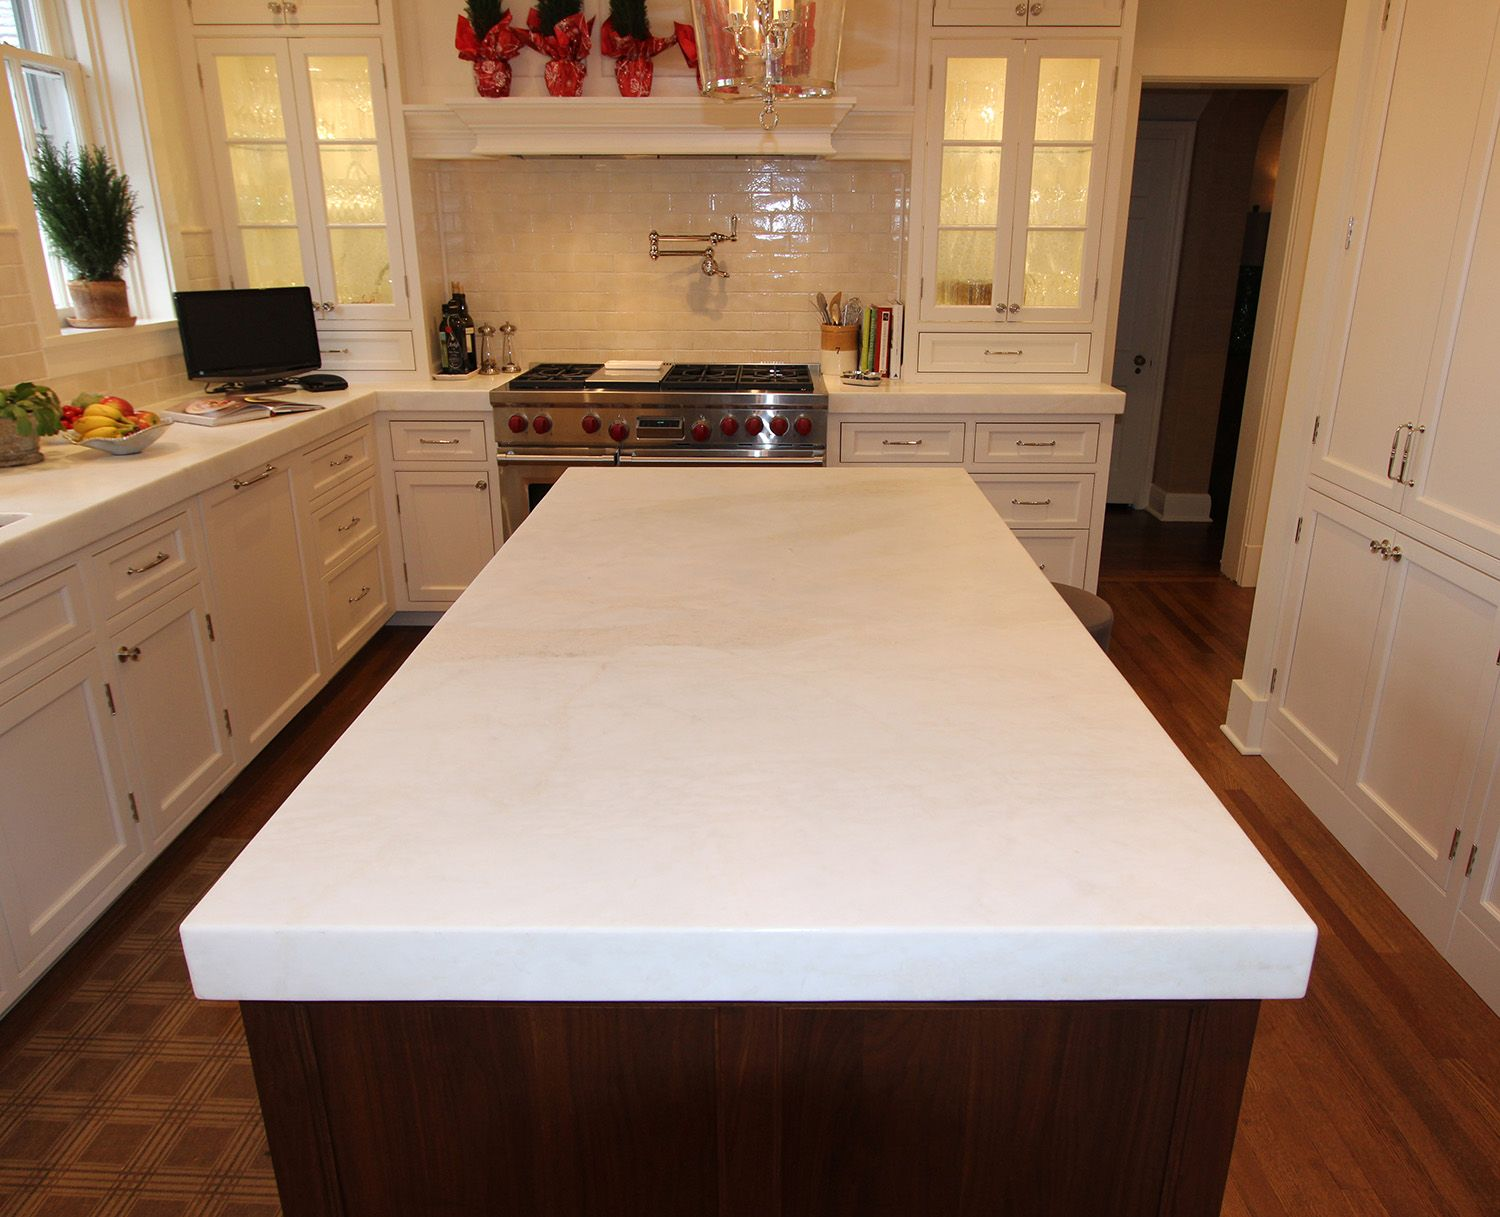 kitchen island countertops cabinet handles and knobs countertop with light colored granite